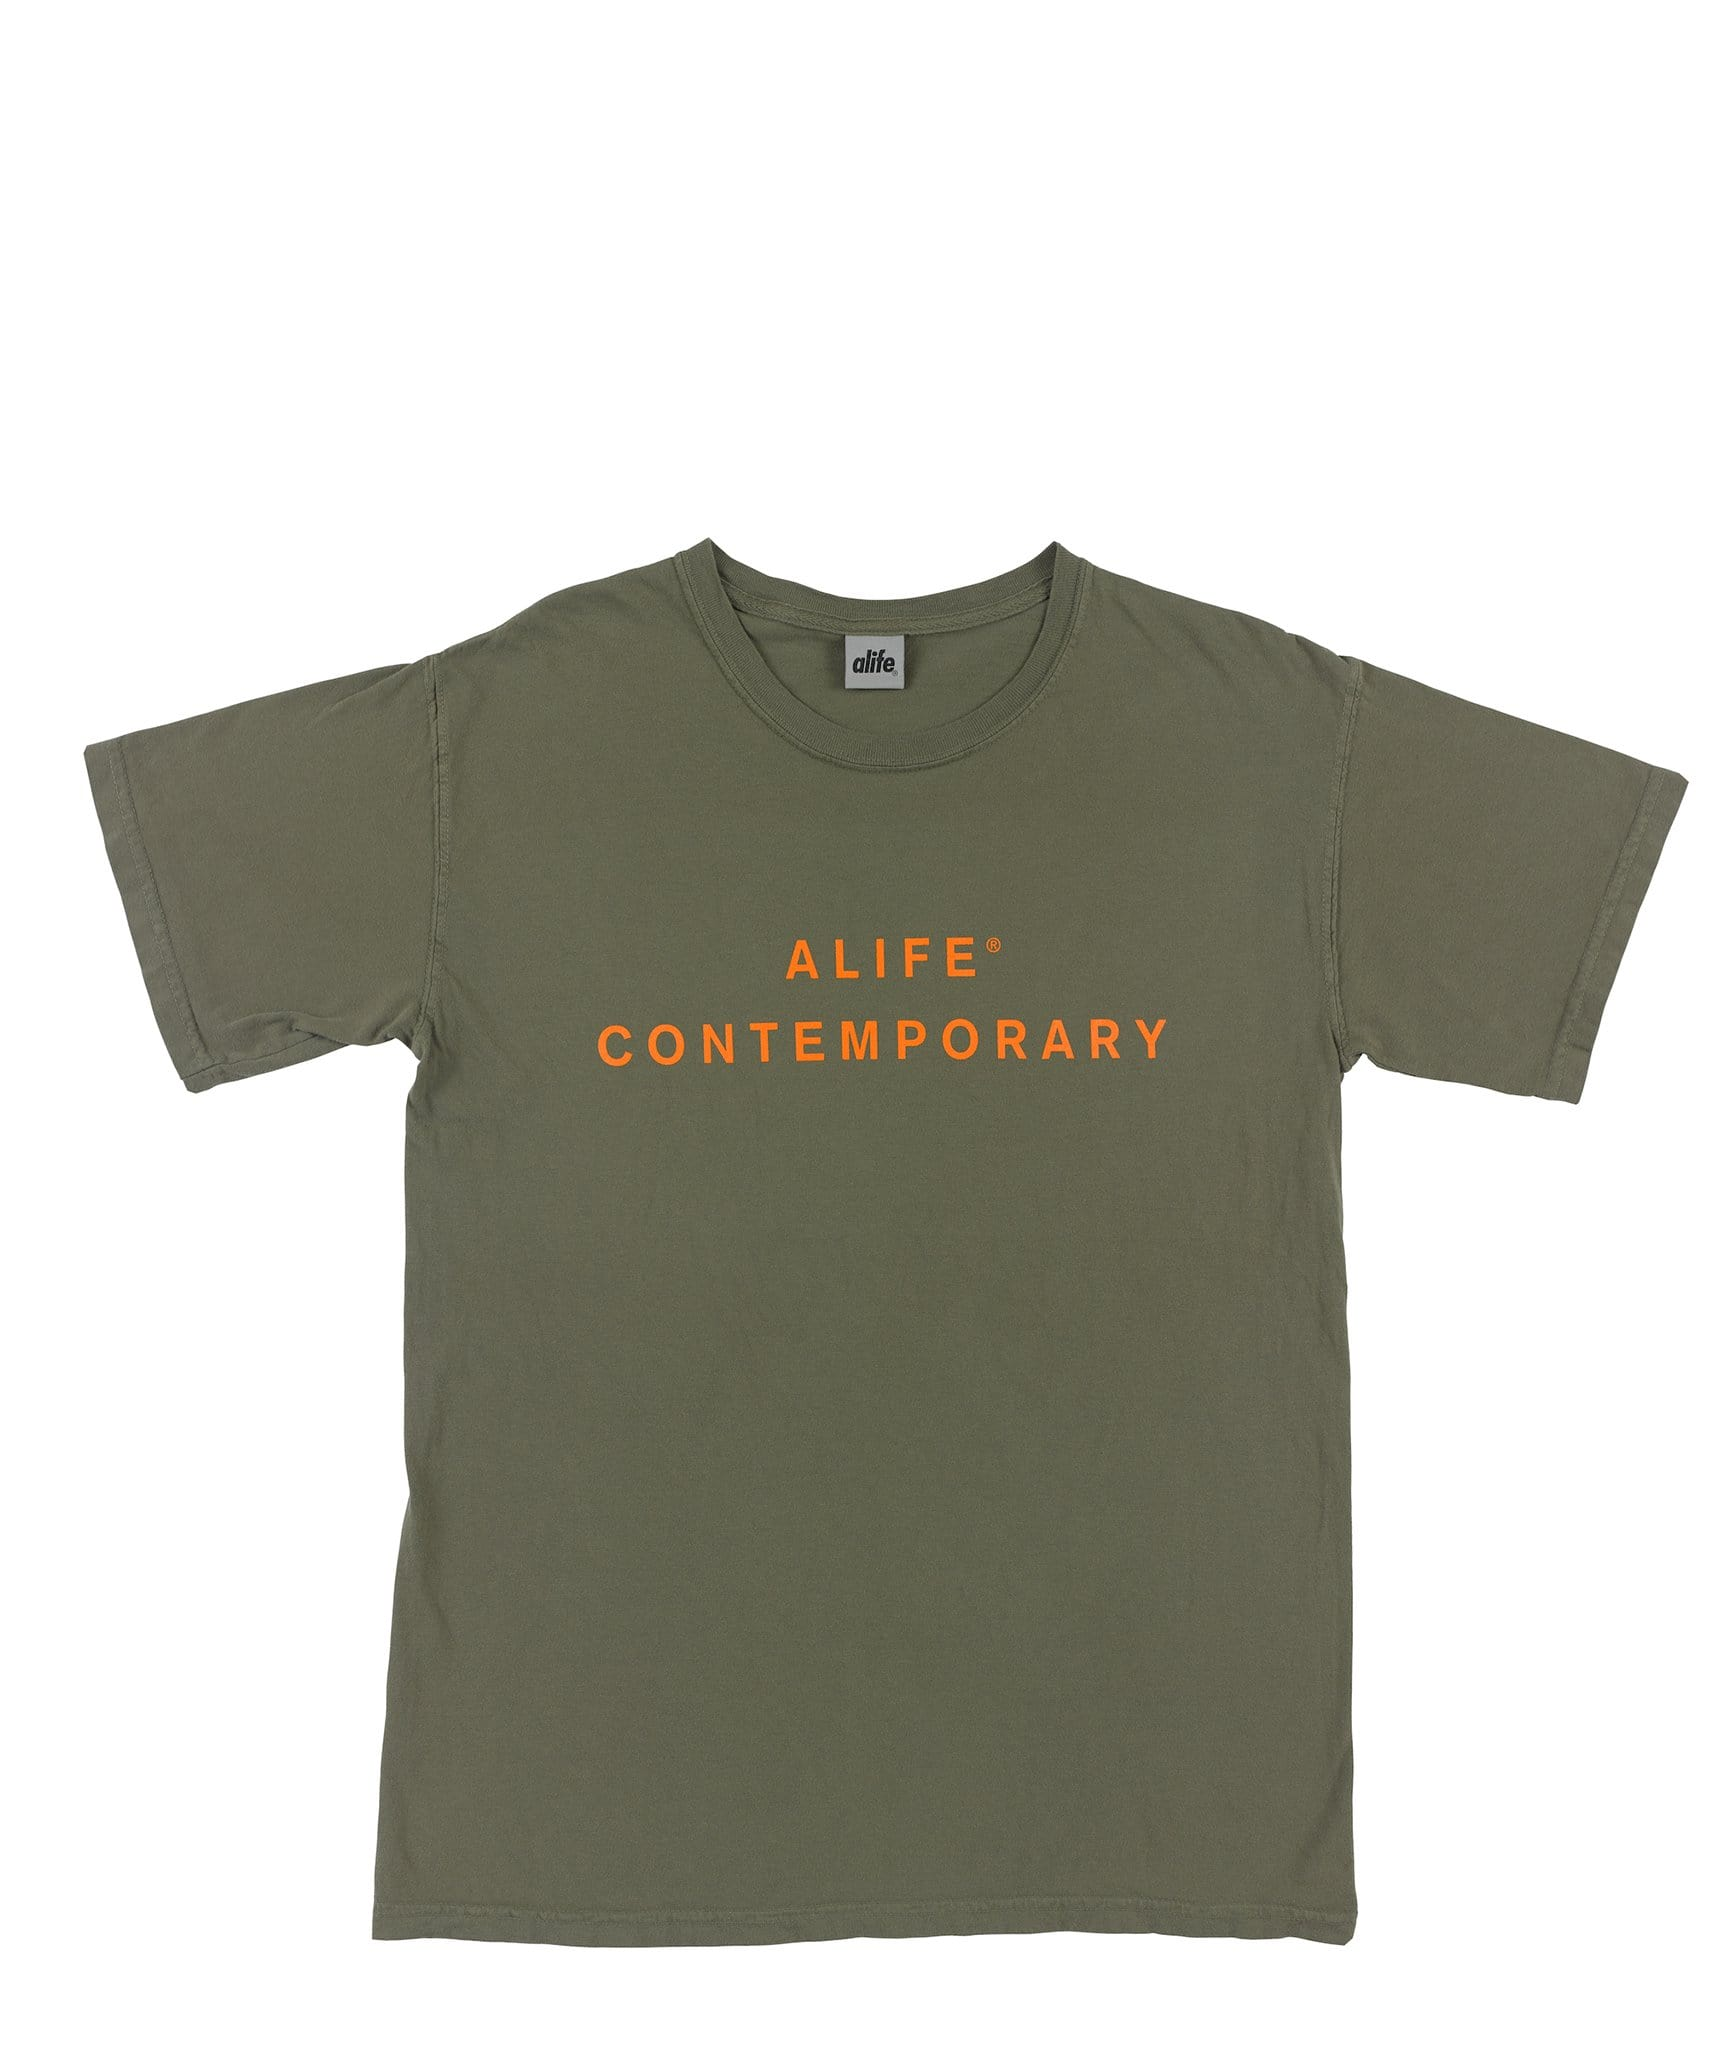 Alife Contemporary Tee